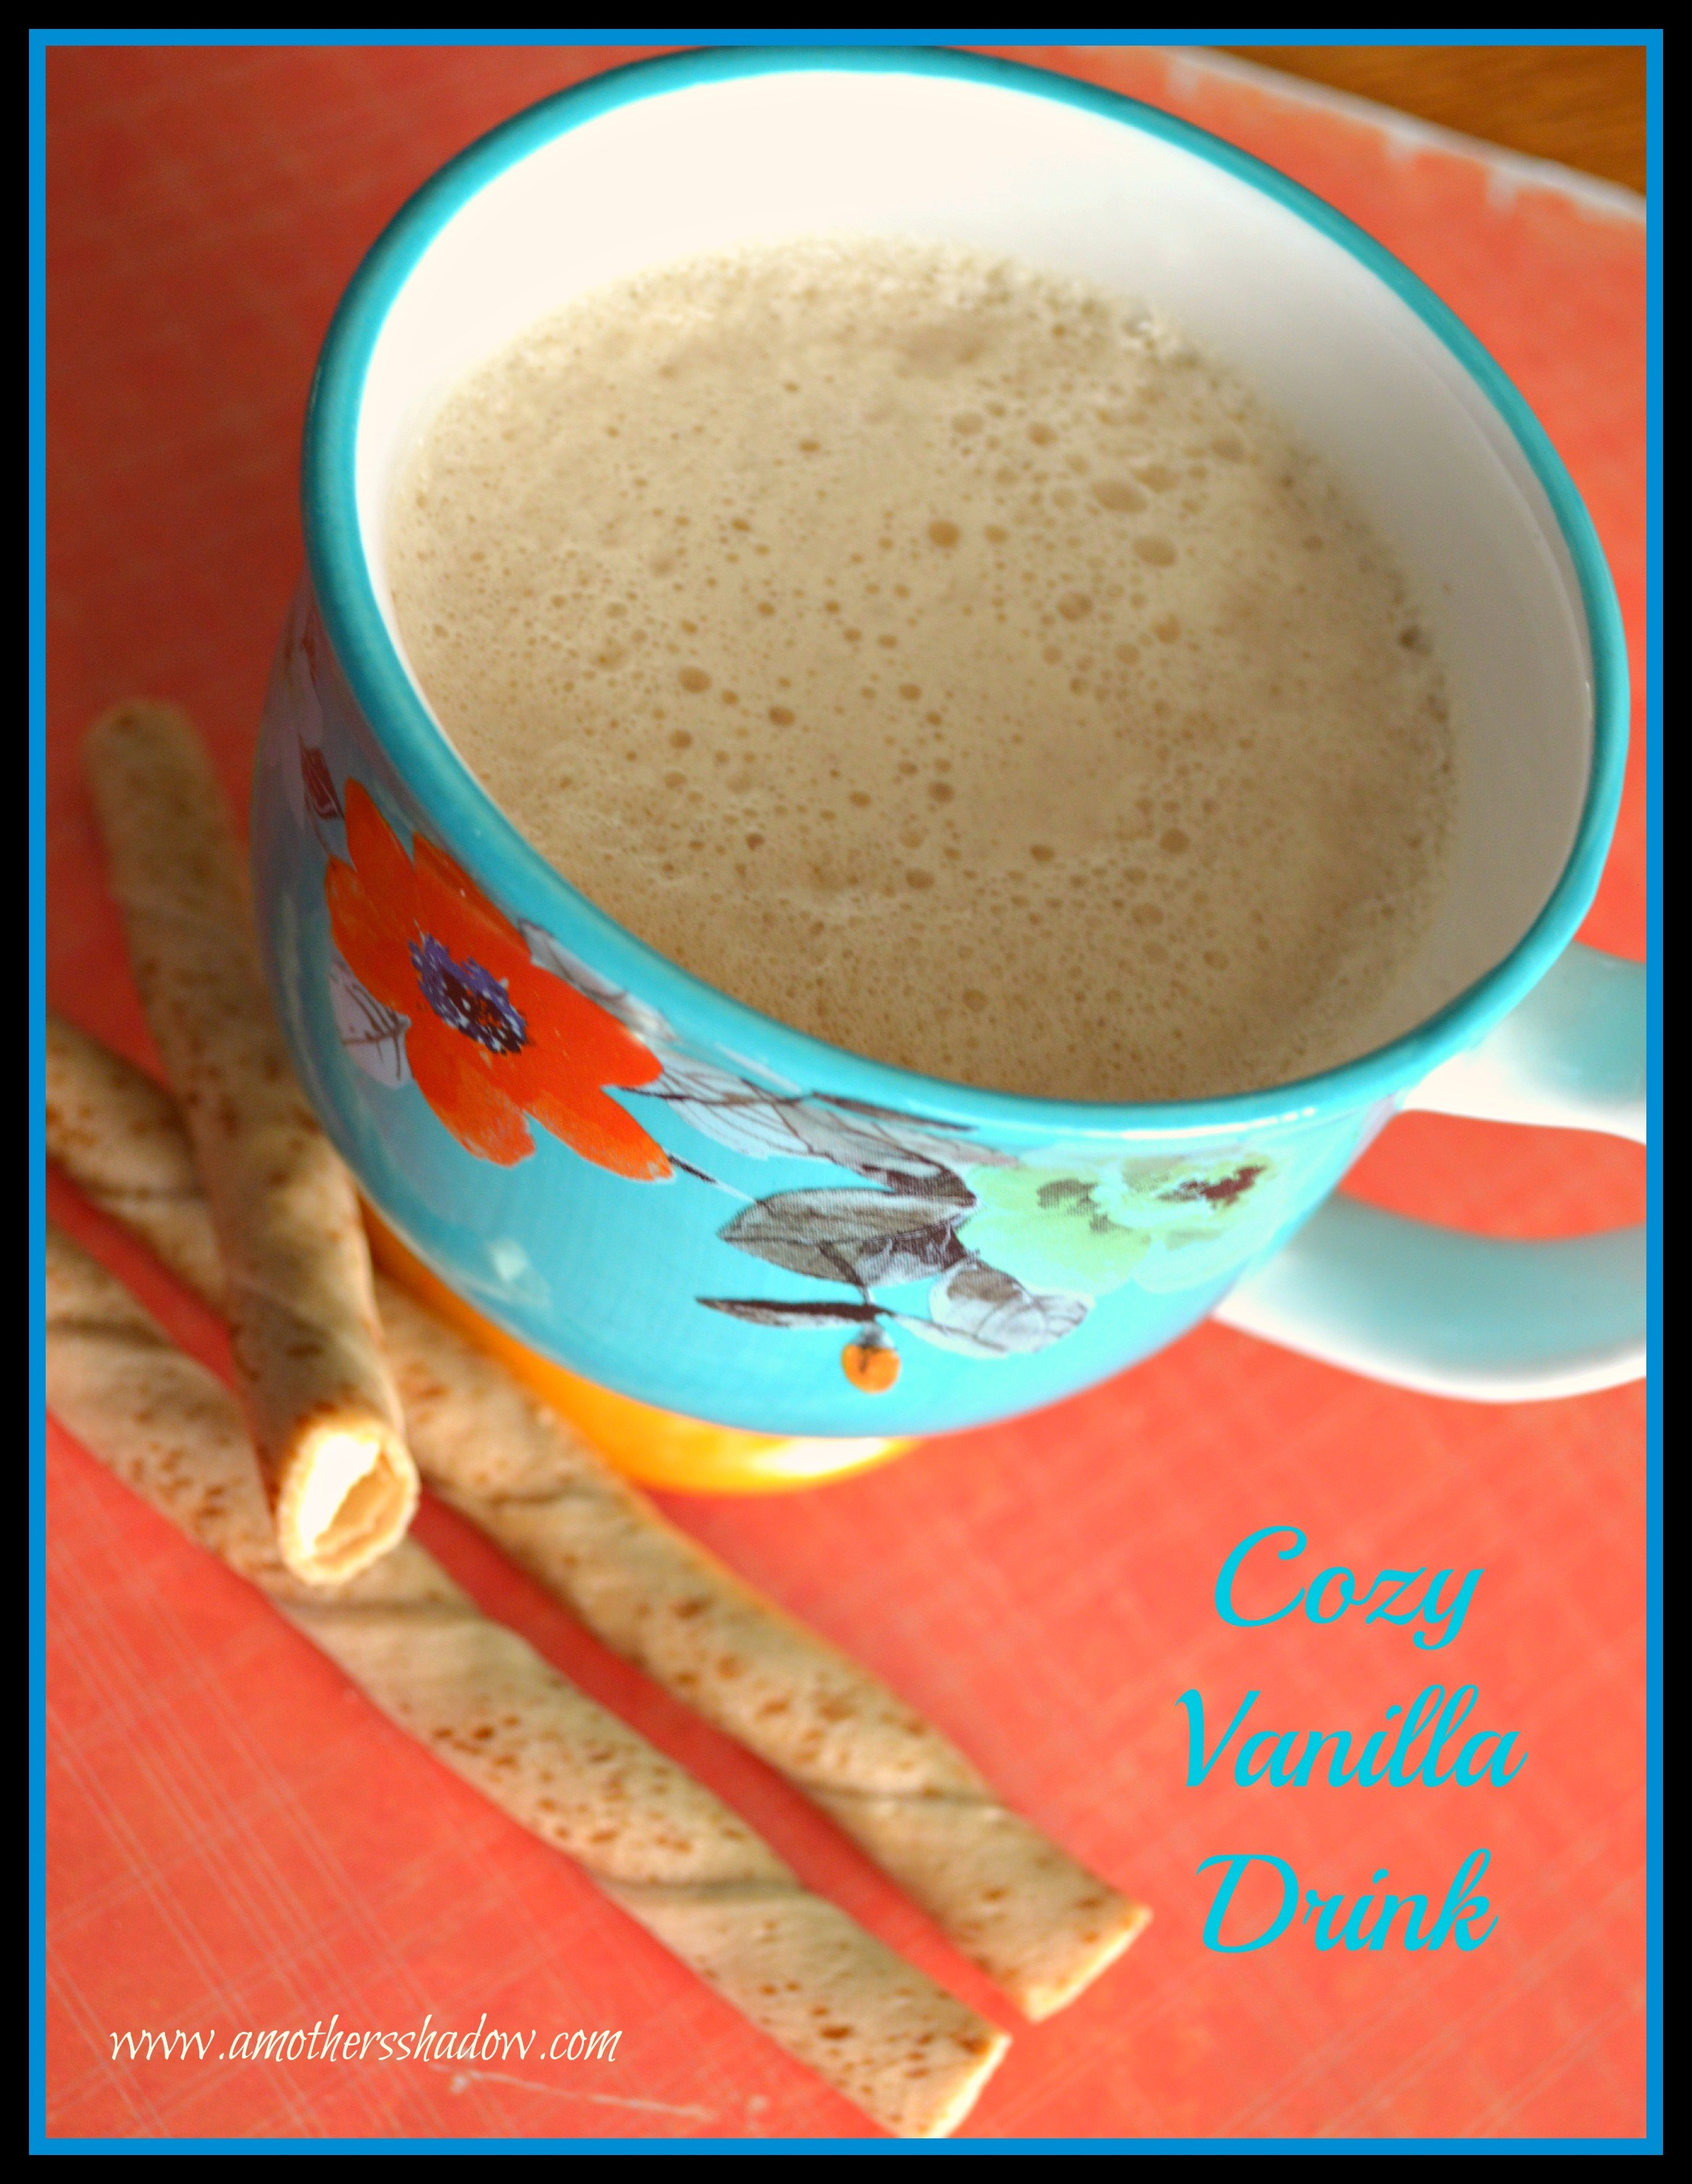 Cozy Vanilla Drink